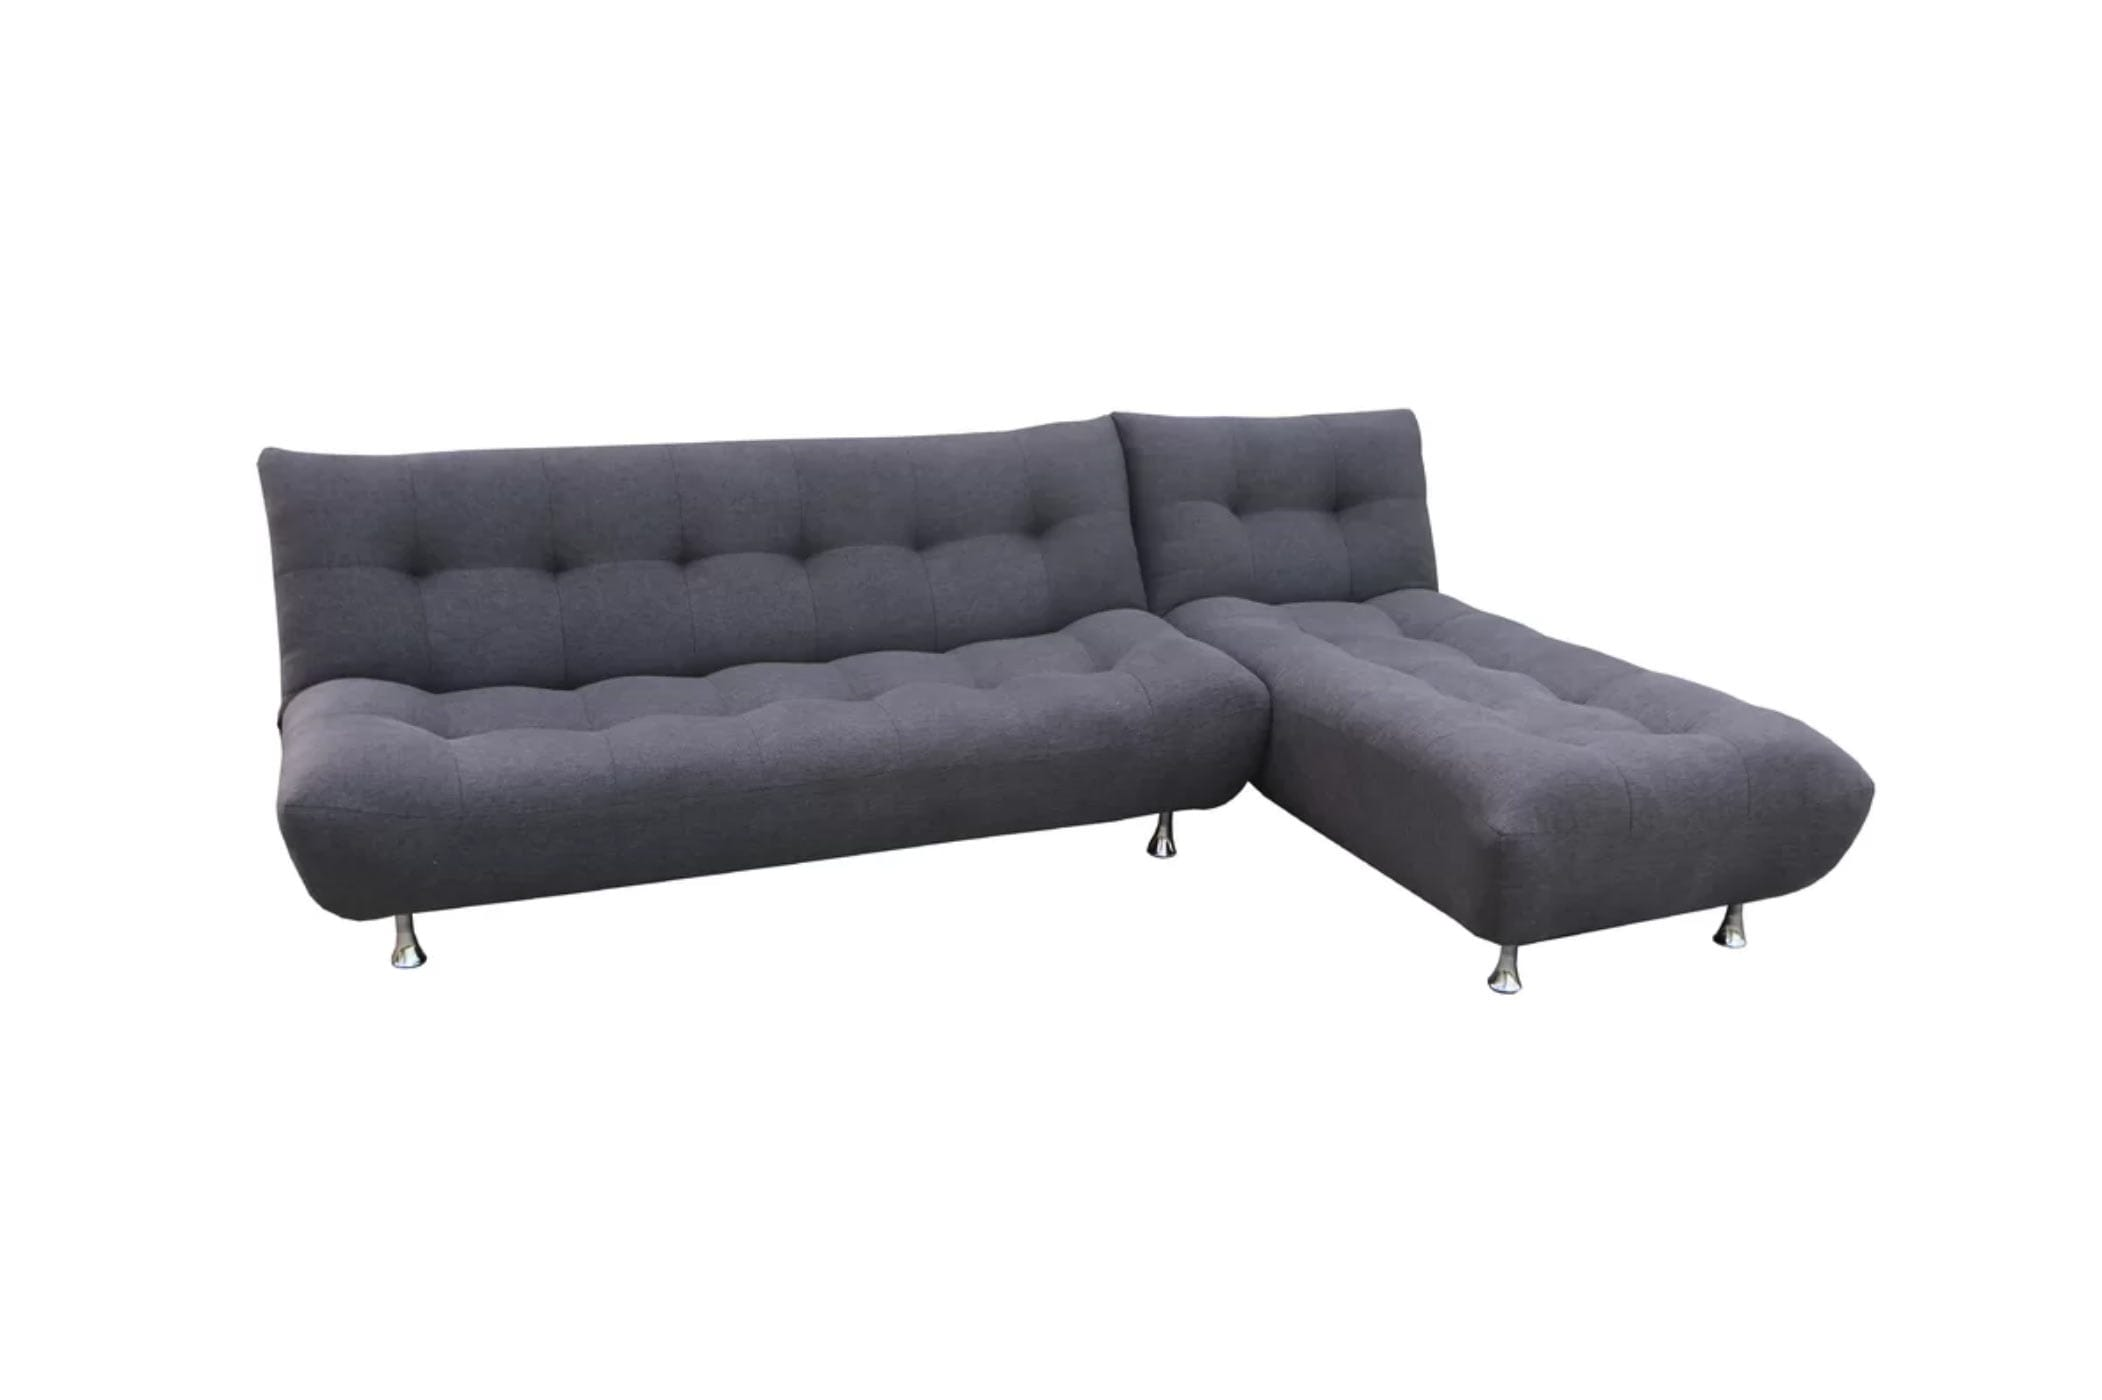 Cloud Midnight Gray Sofa Bed w/Optional Chaise by Night&Day Furniture